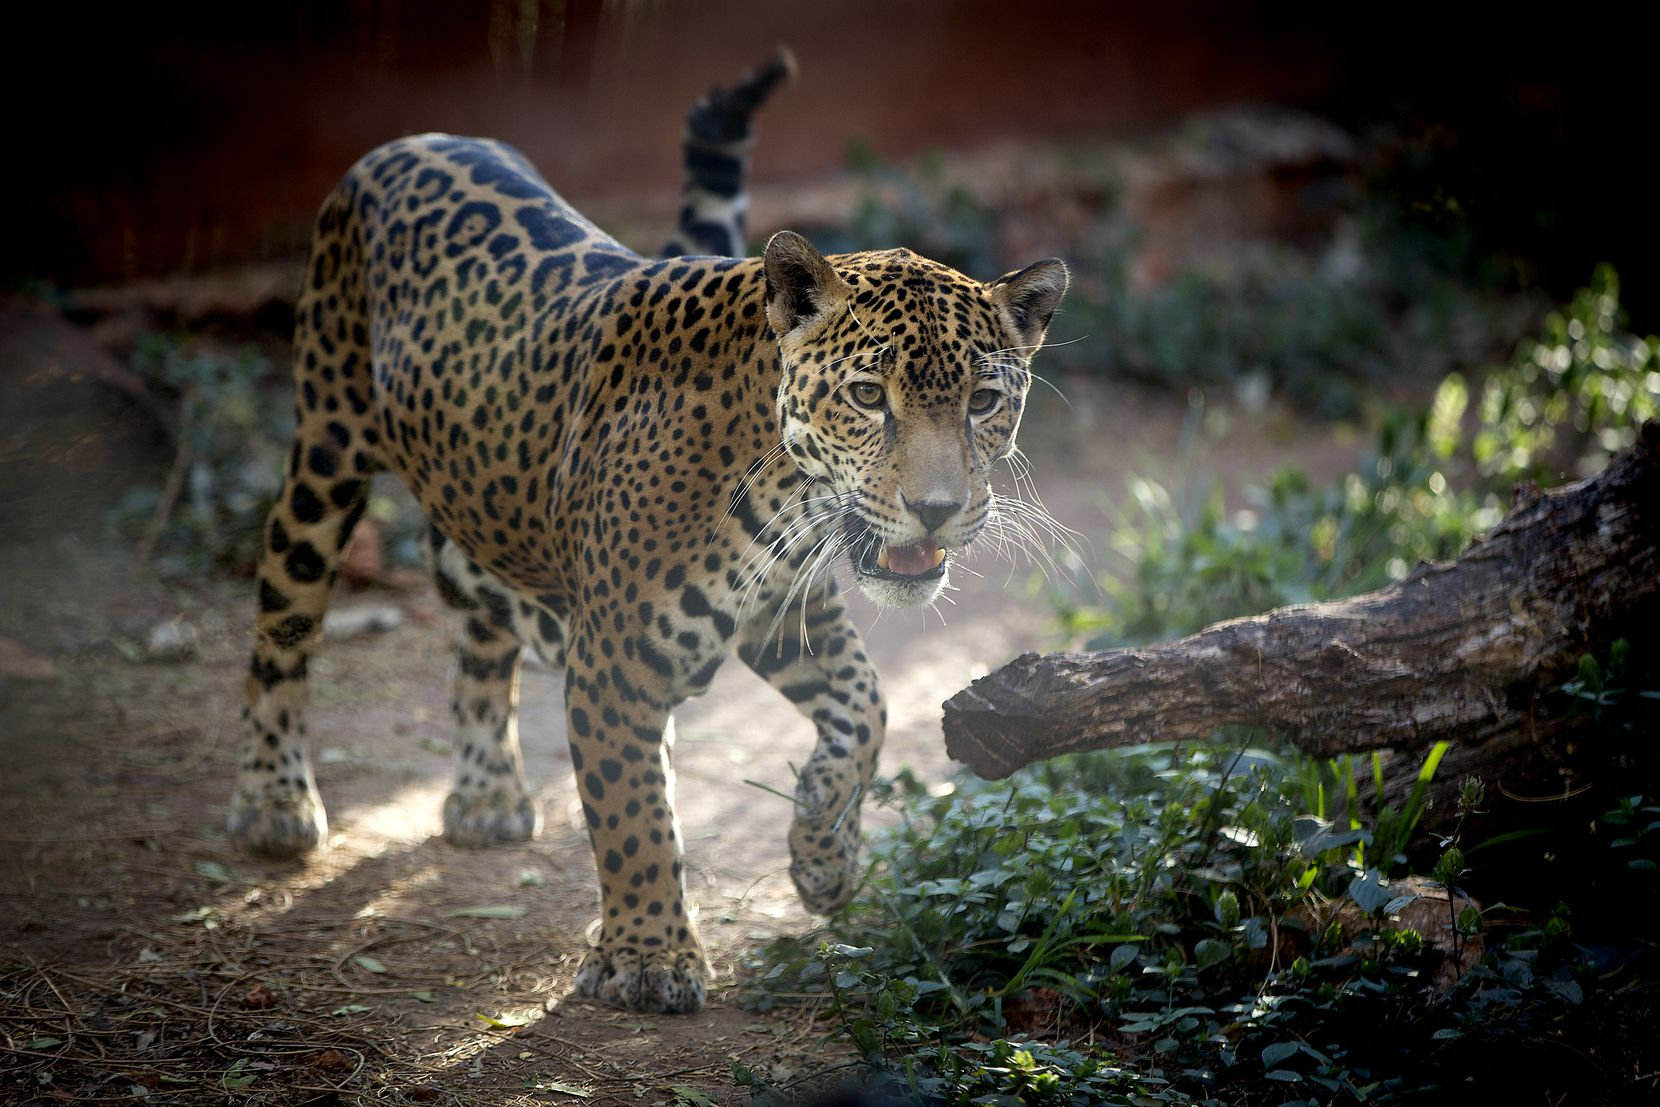 A jaguar makes its way through its enclosure at the Choco-Story Museum and Eco-Park in Uxmal, Yucatan. The park has a Mayan chocolate museum, but it is also filled with plants, flowers and animals native to the area.